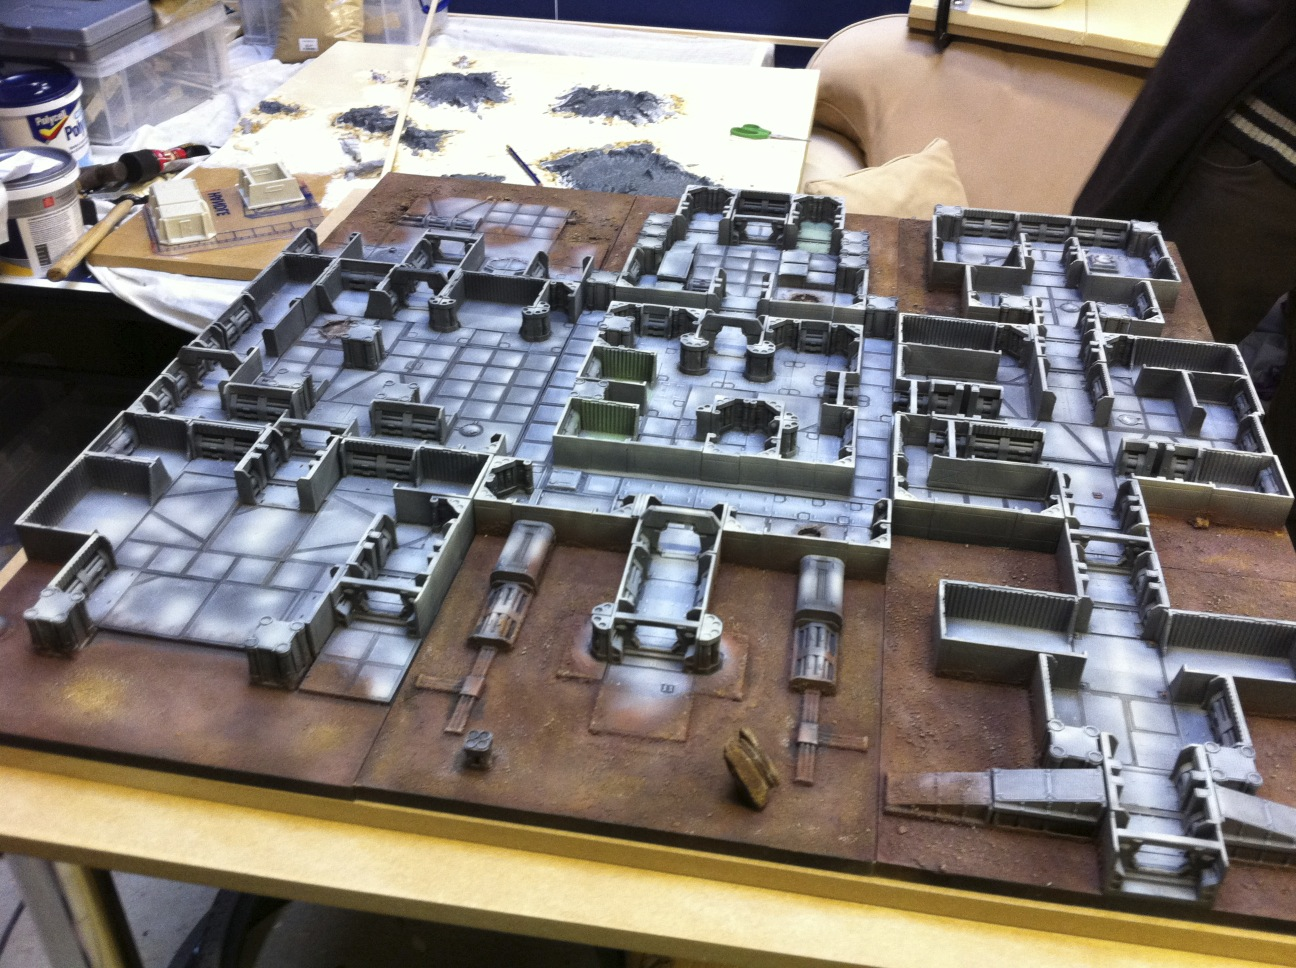 sci fi space stations deck plans - photo #33